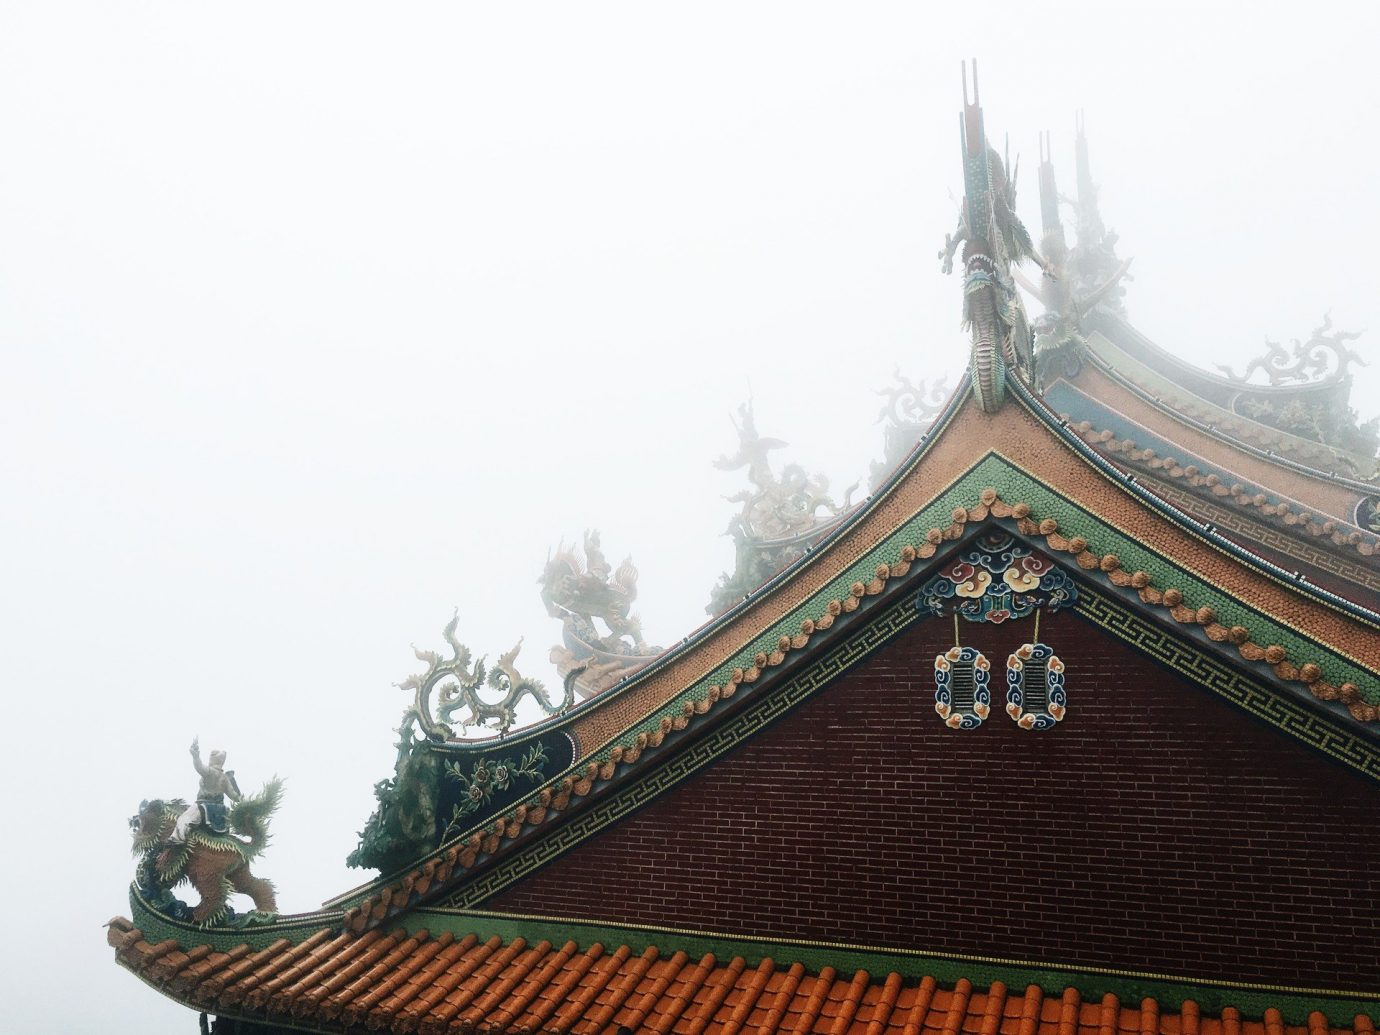 Jetsetter Guides sky chinese architecture outdoor place of worship building historic site wat shrine hindu temple temple